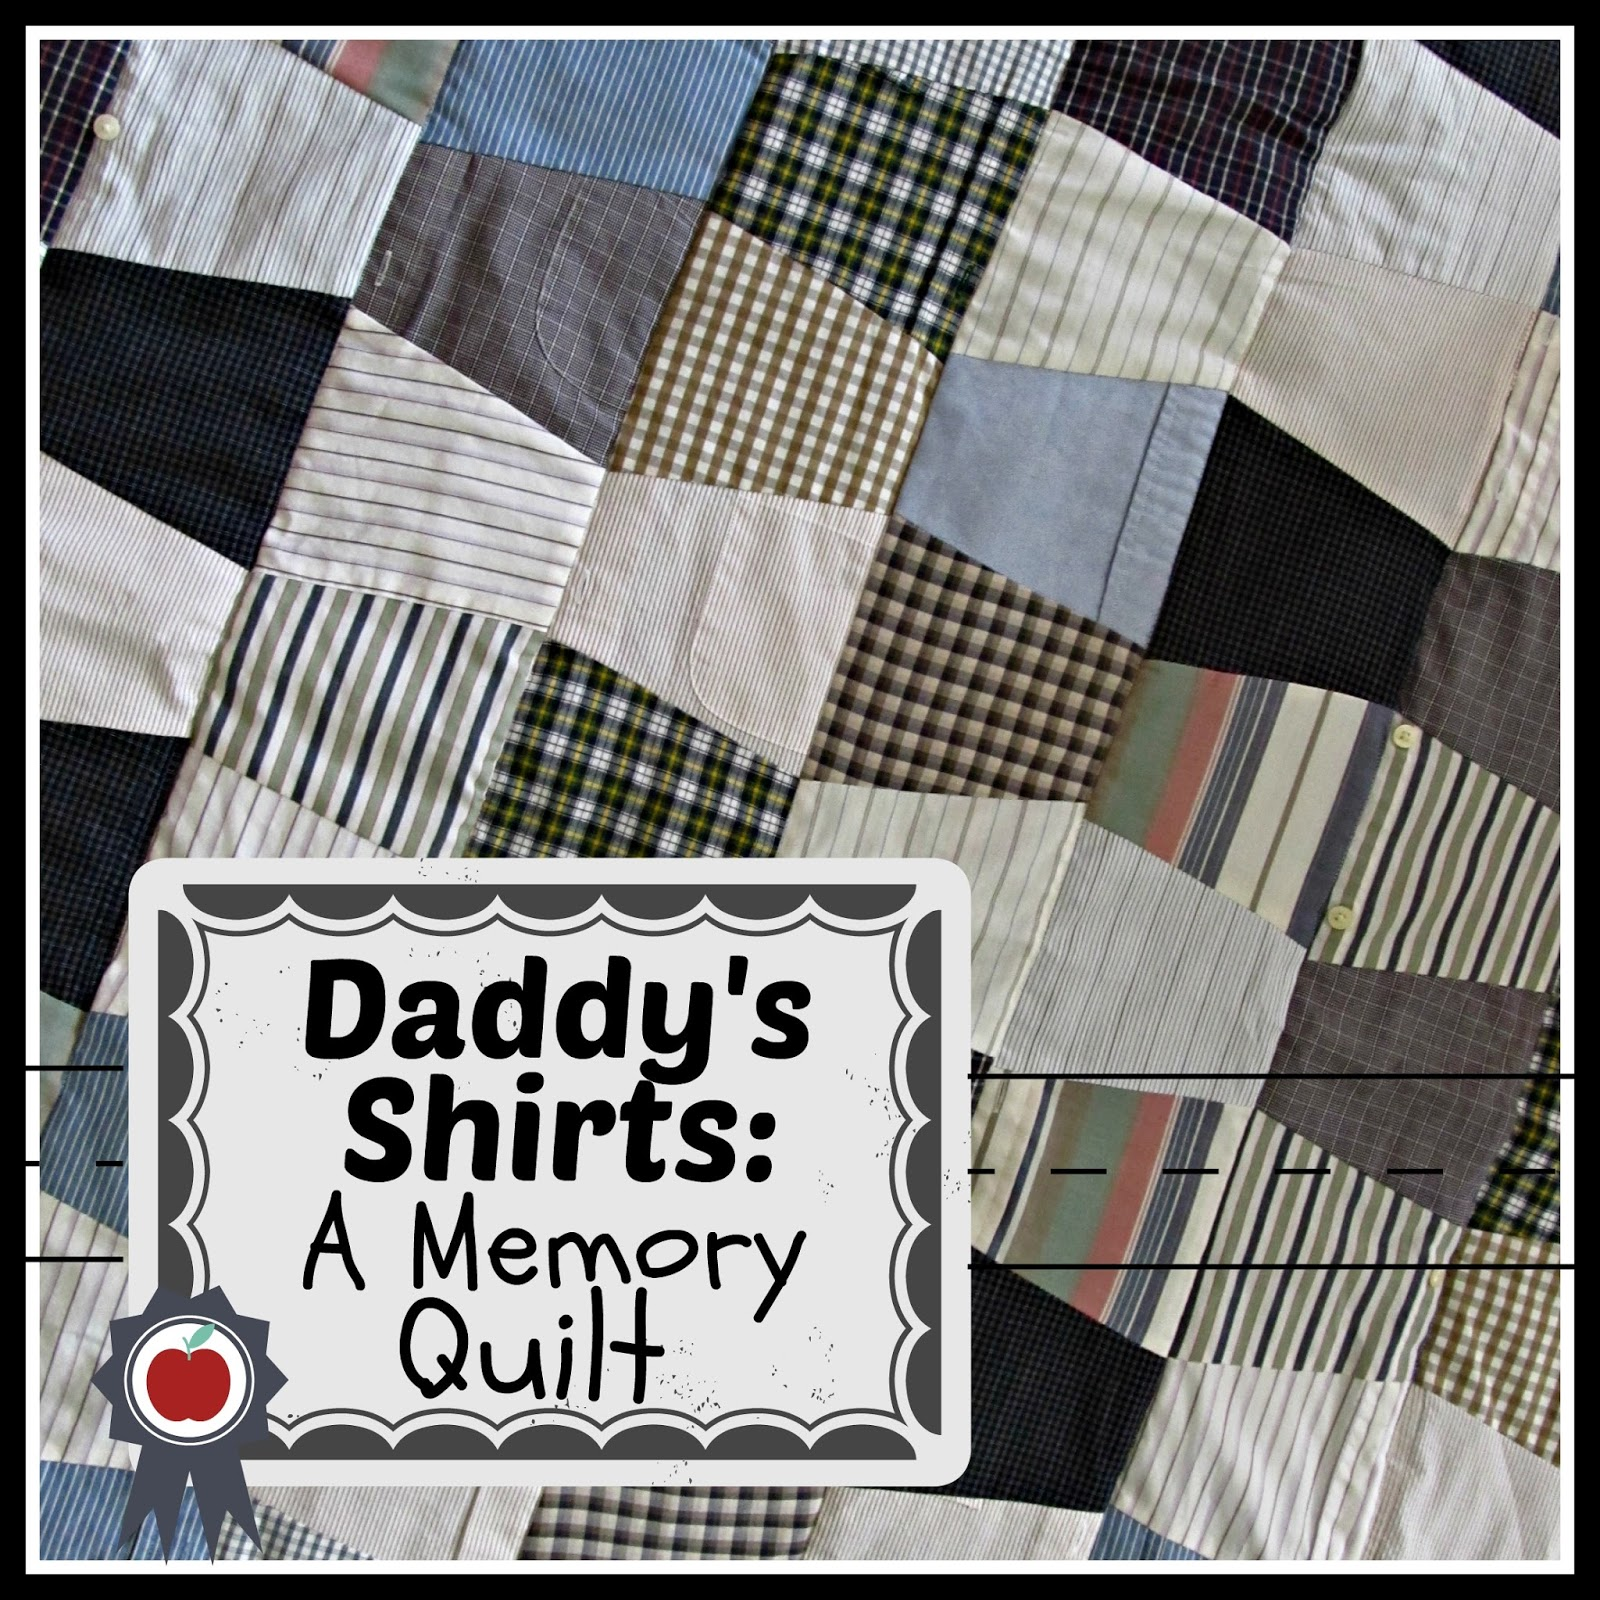 Queen b creative me daddy 39 s shirts a memory quilt for Things to make out of a loved one s clothing